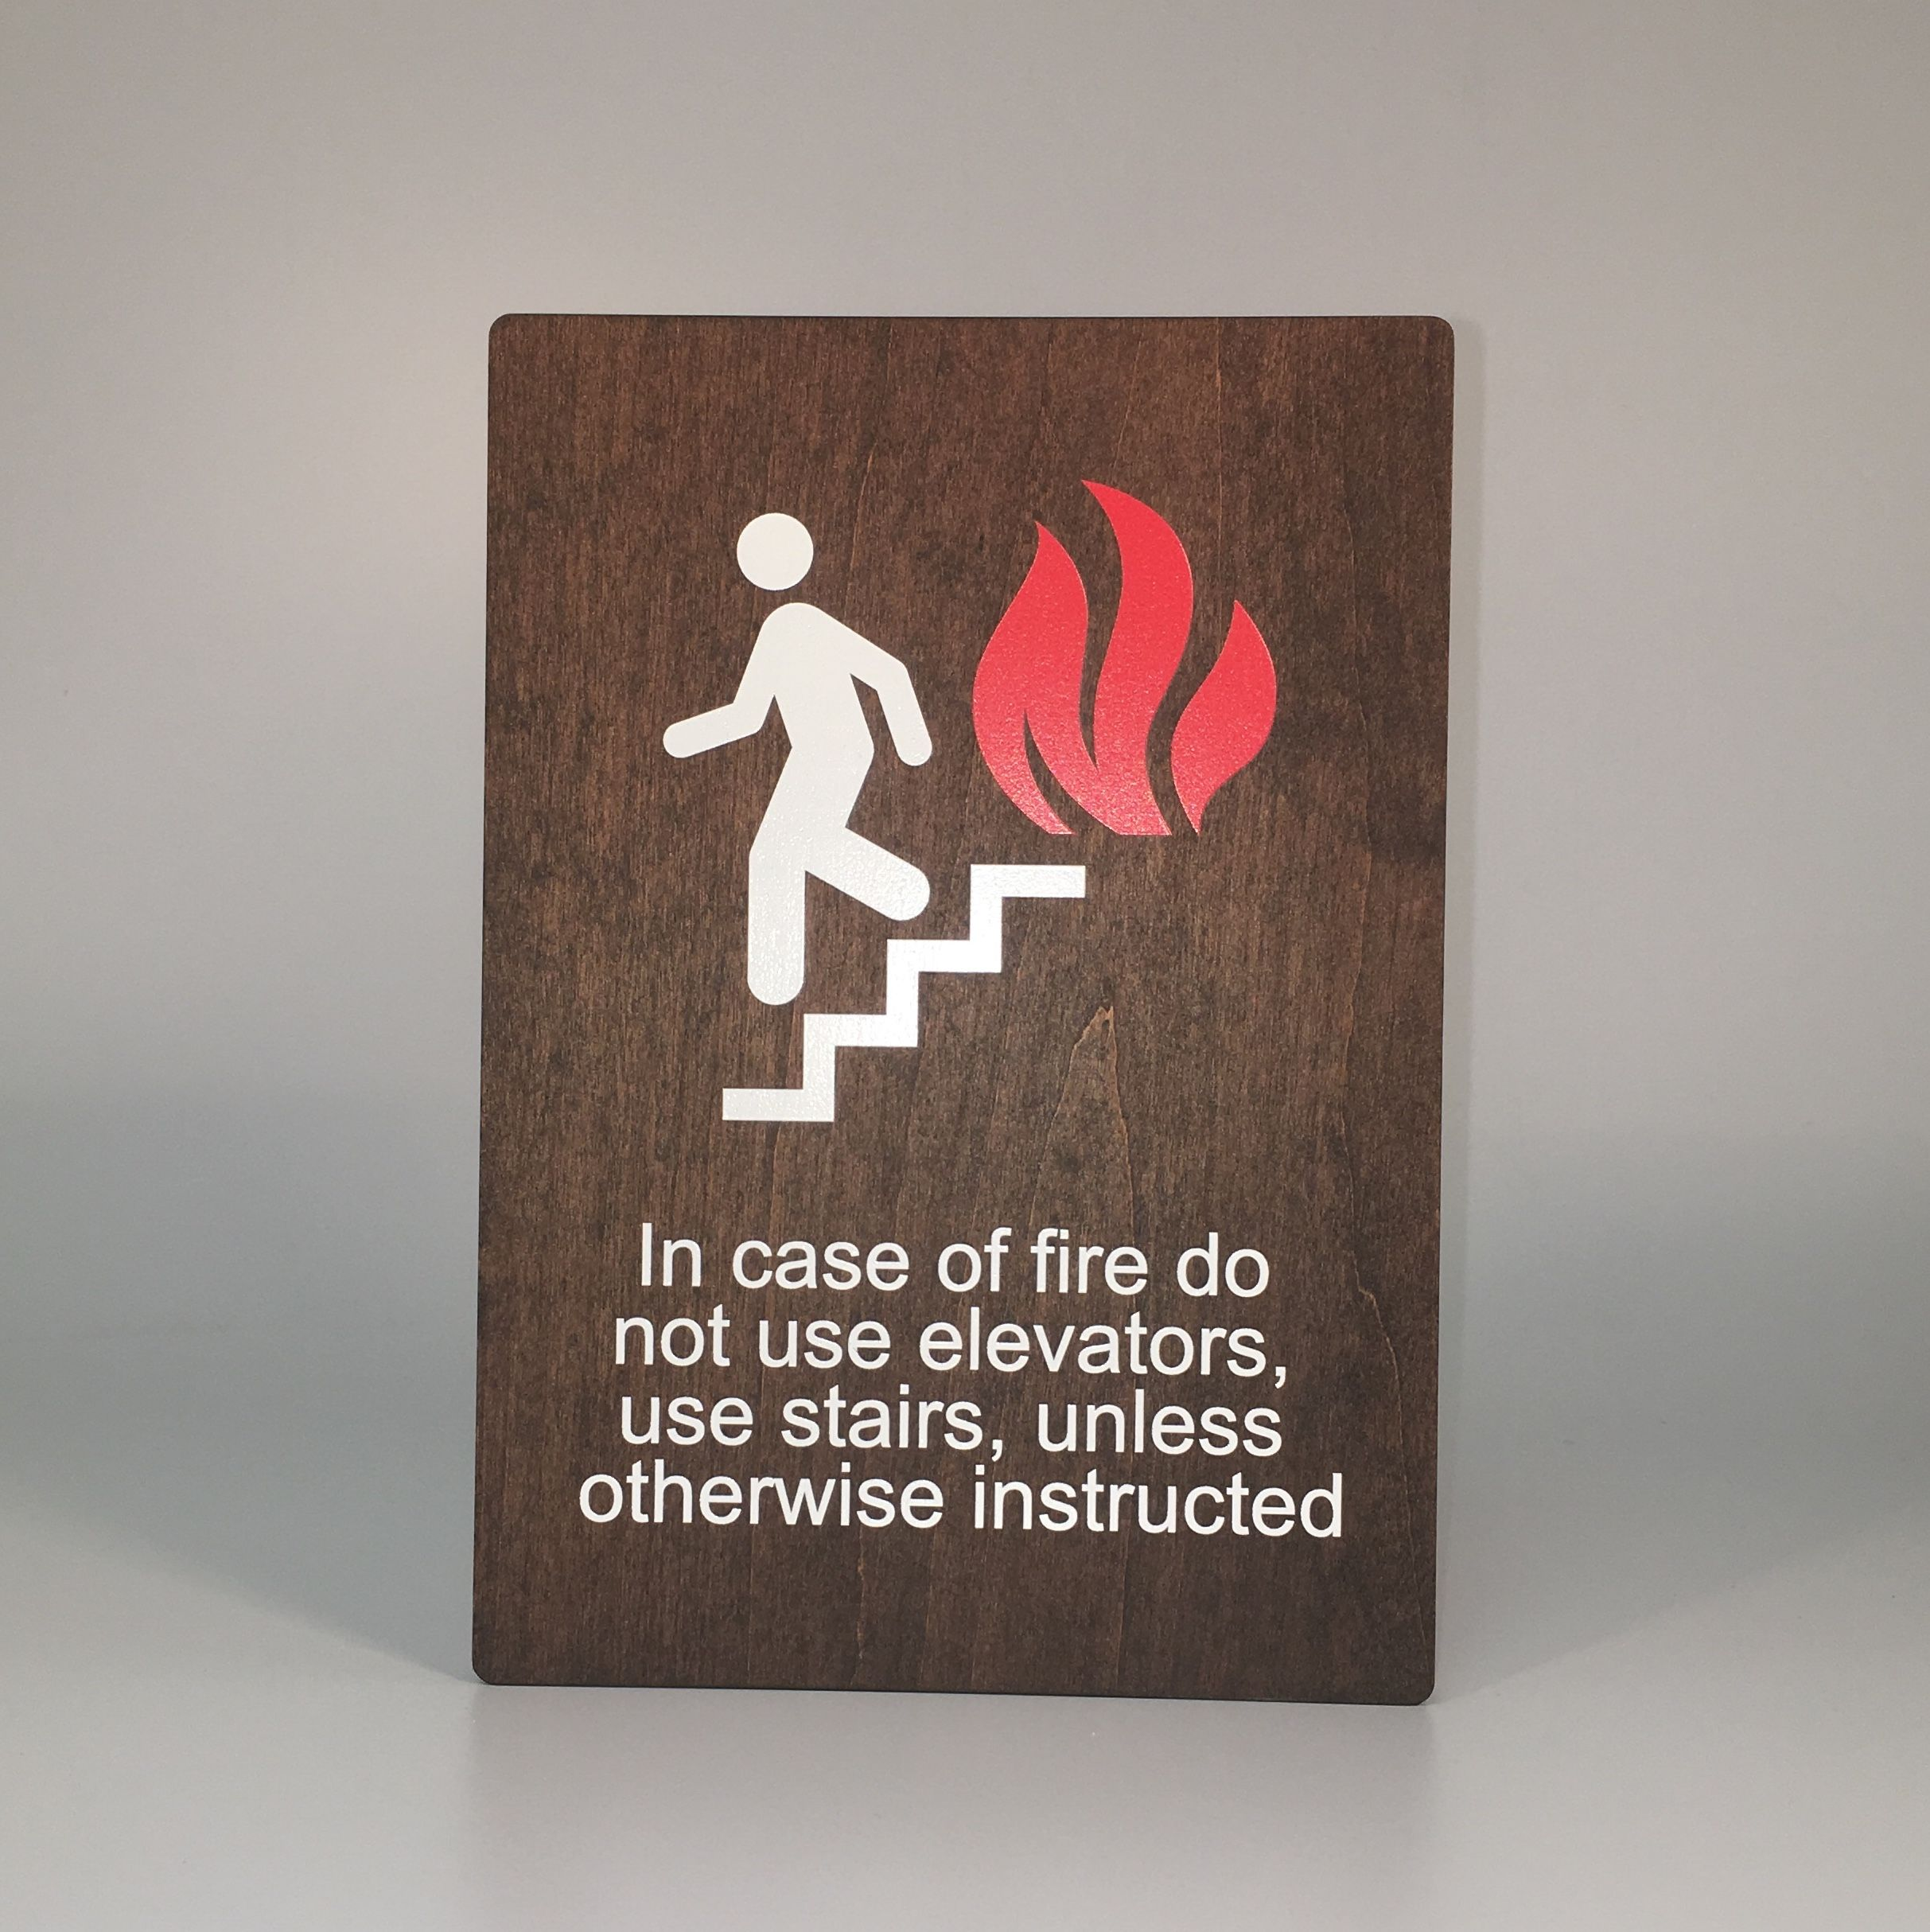 In Case Of Fire Use Stairway Sign Ful 01 Ada Signage Stairways Signage